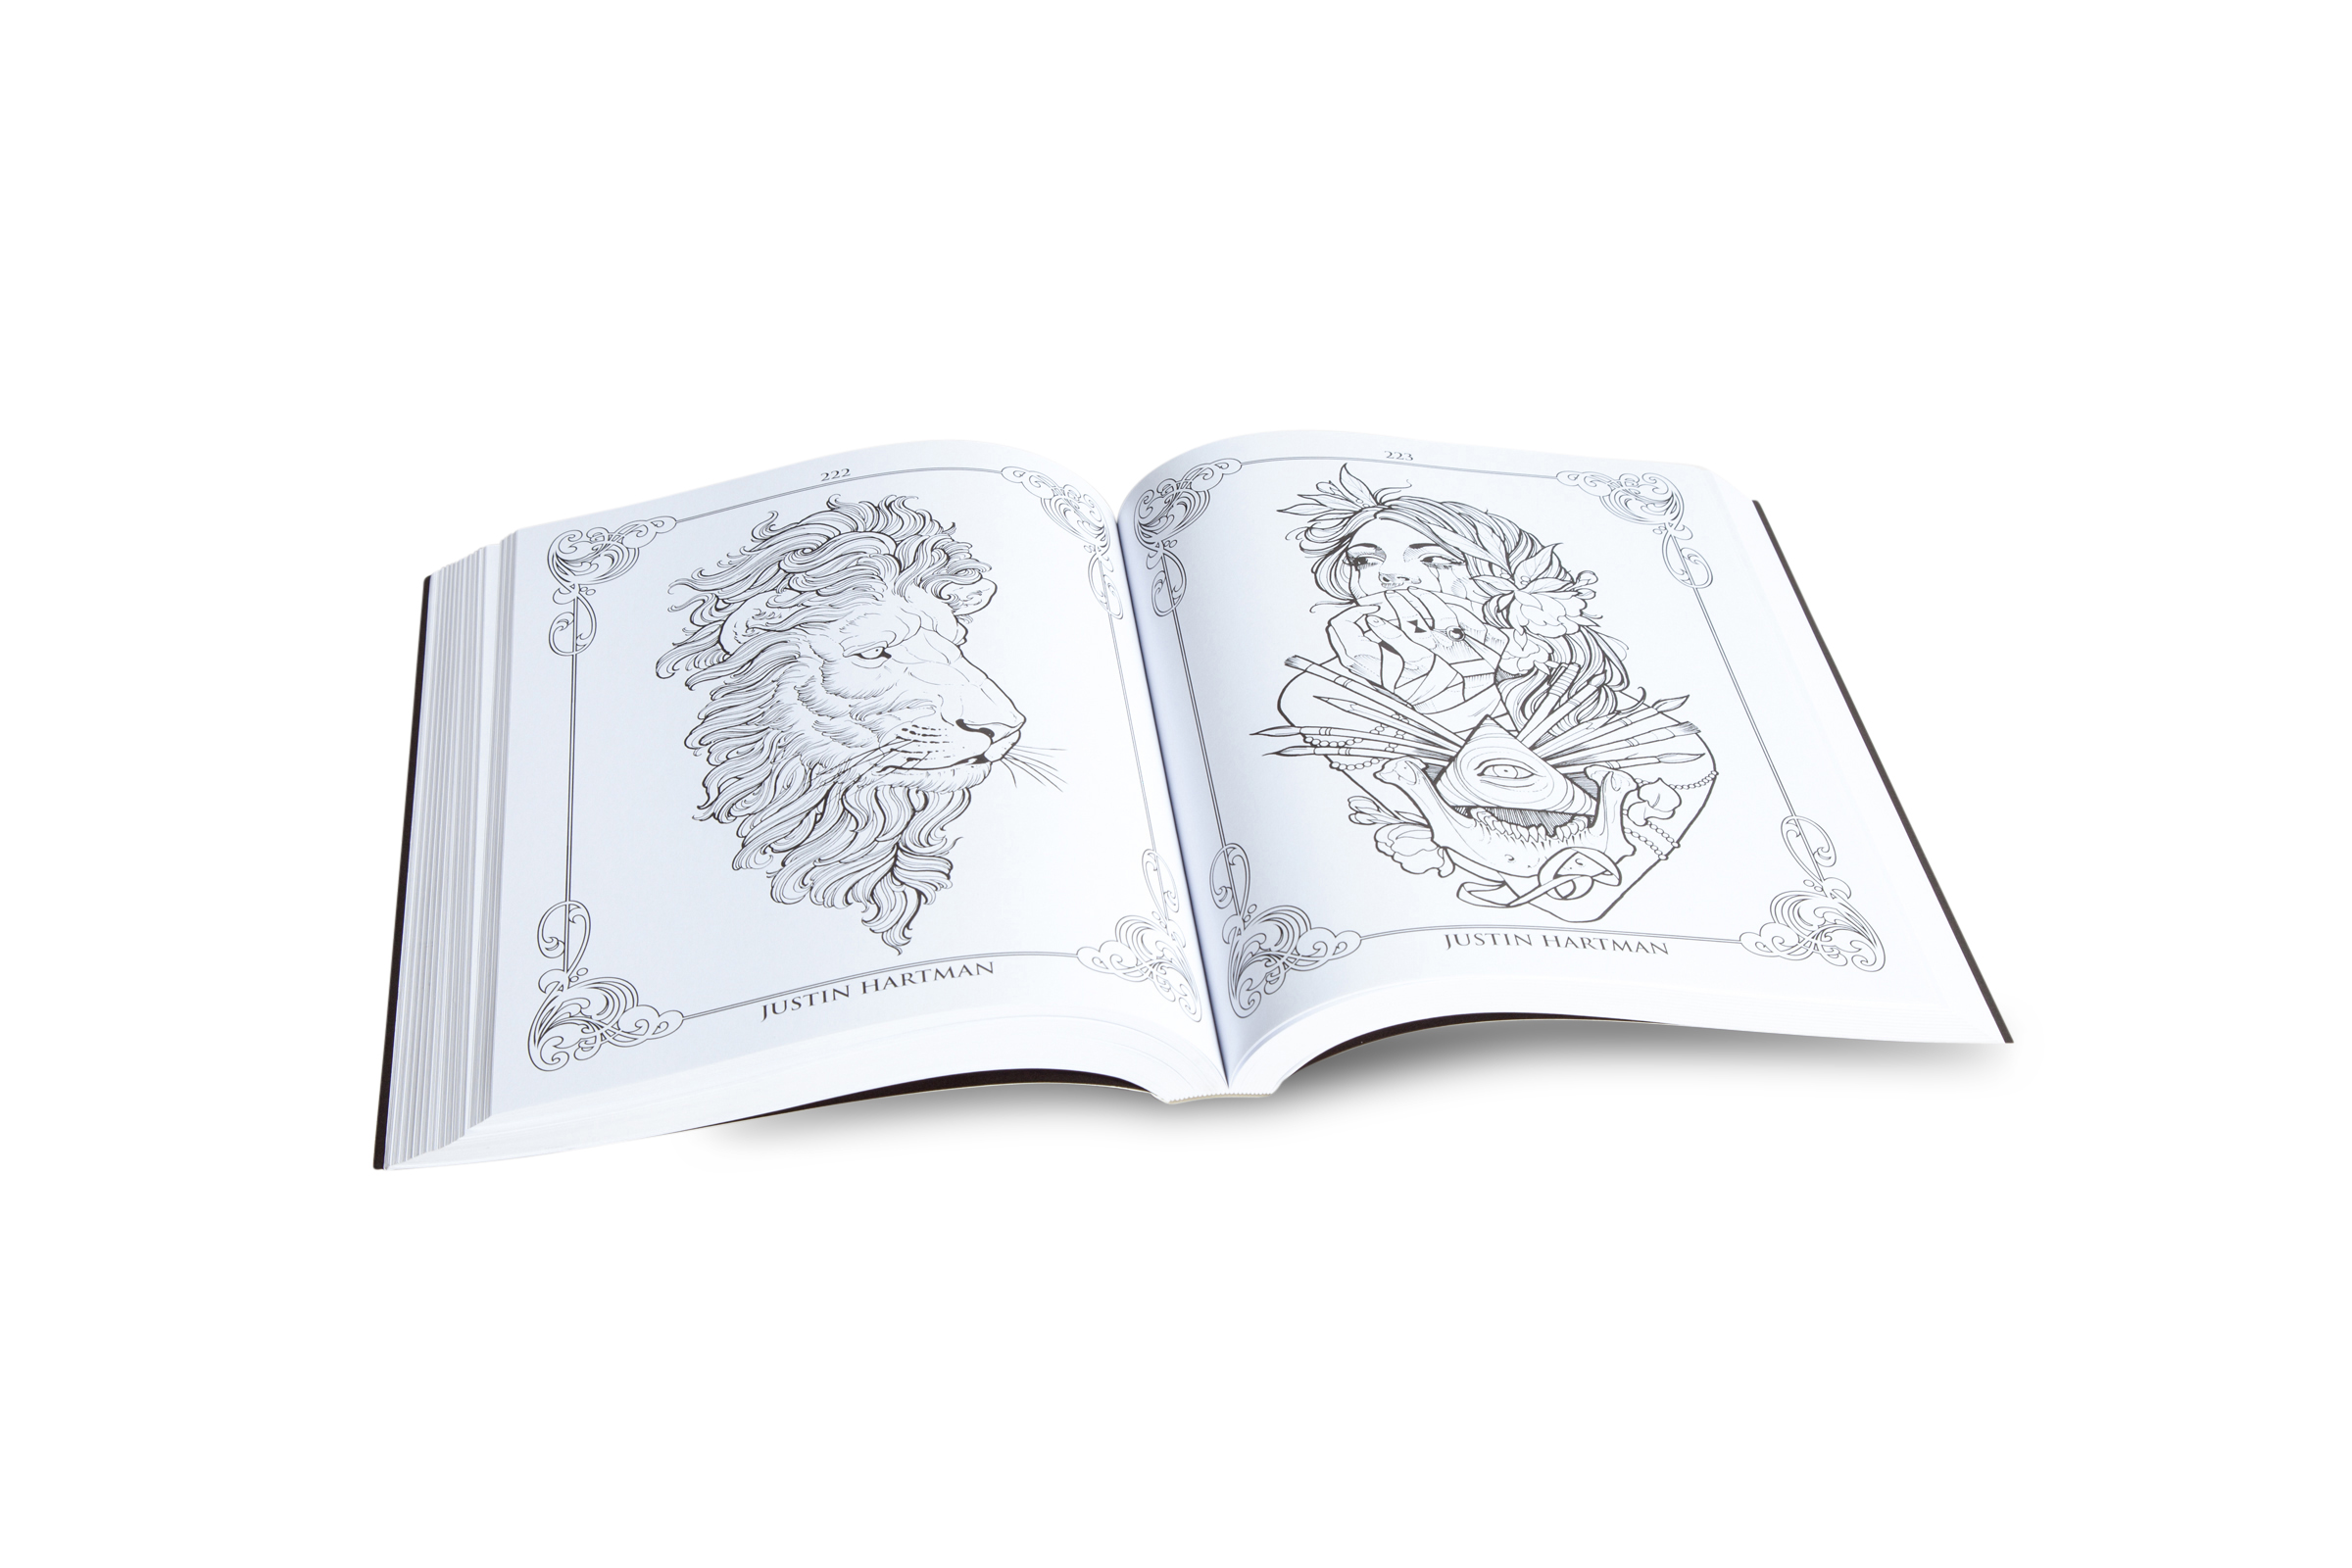 The coloring book project 2nd edition - The Coloring Book Project 2nd Edition